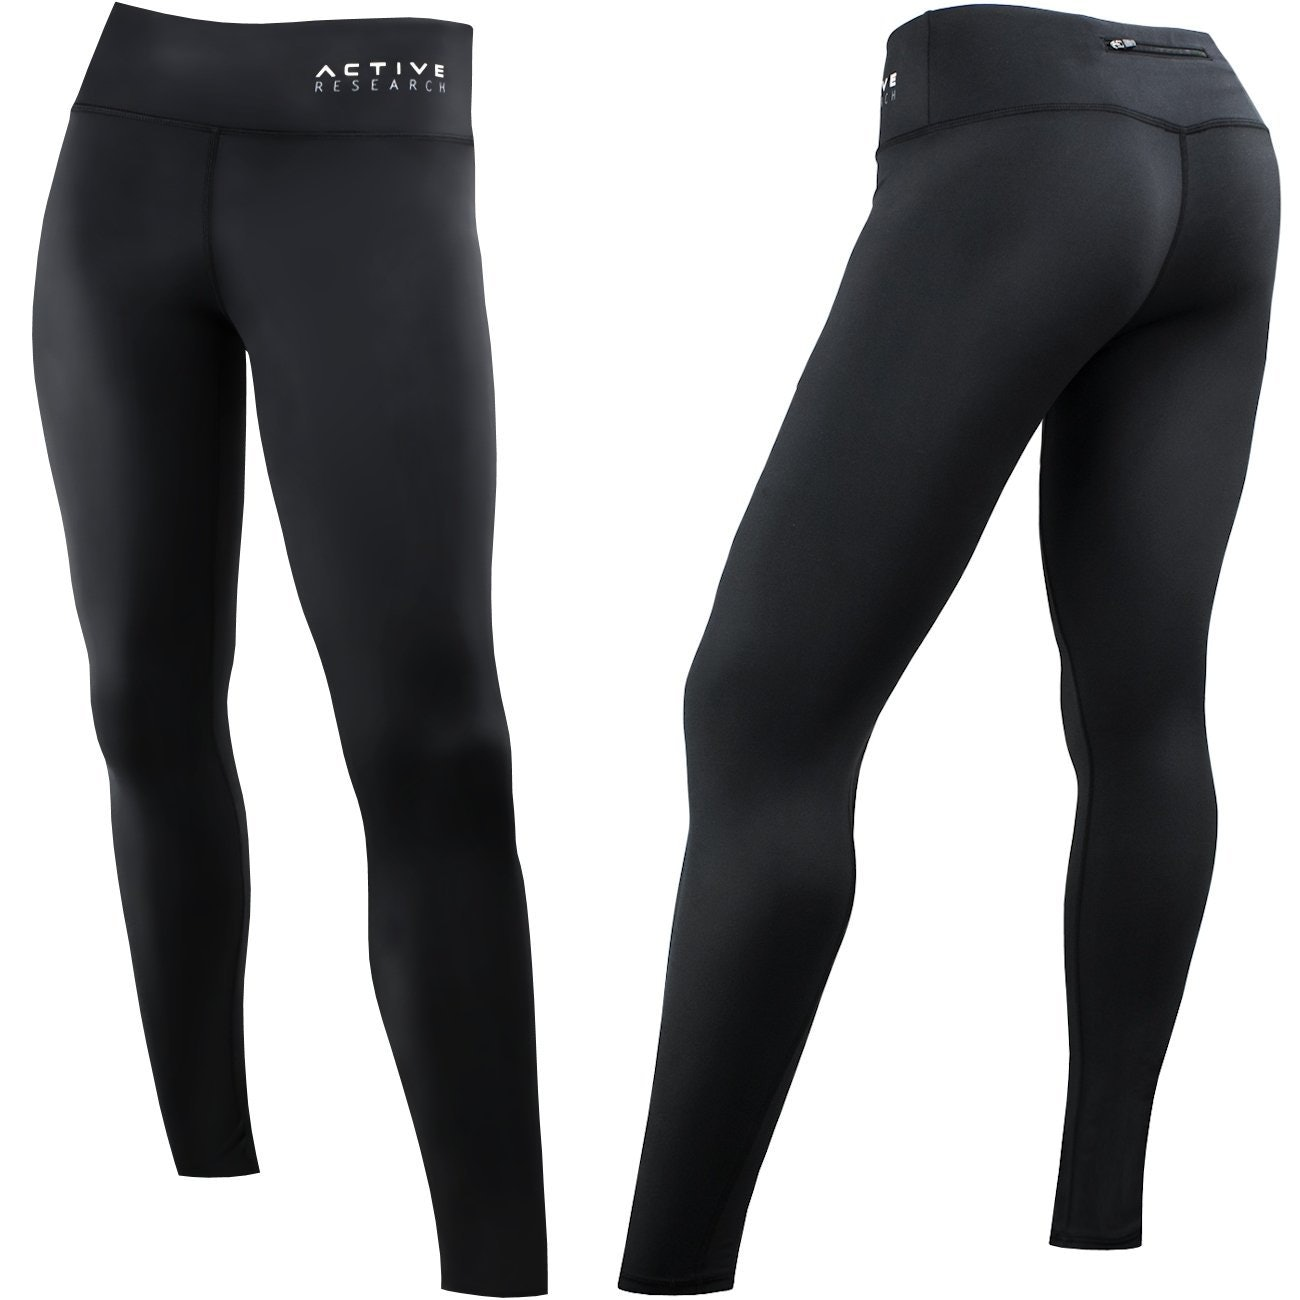 8cdb9067c9d03 The 8 Best Workout Leggings